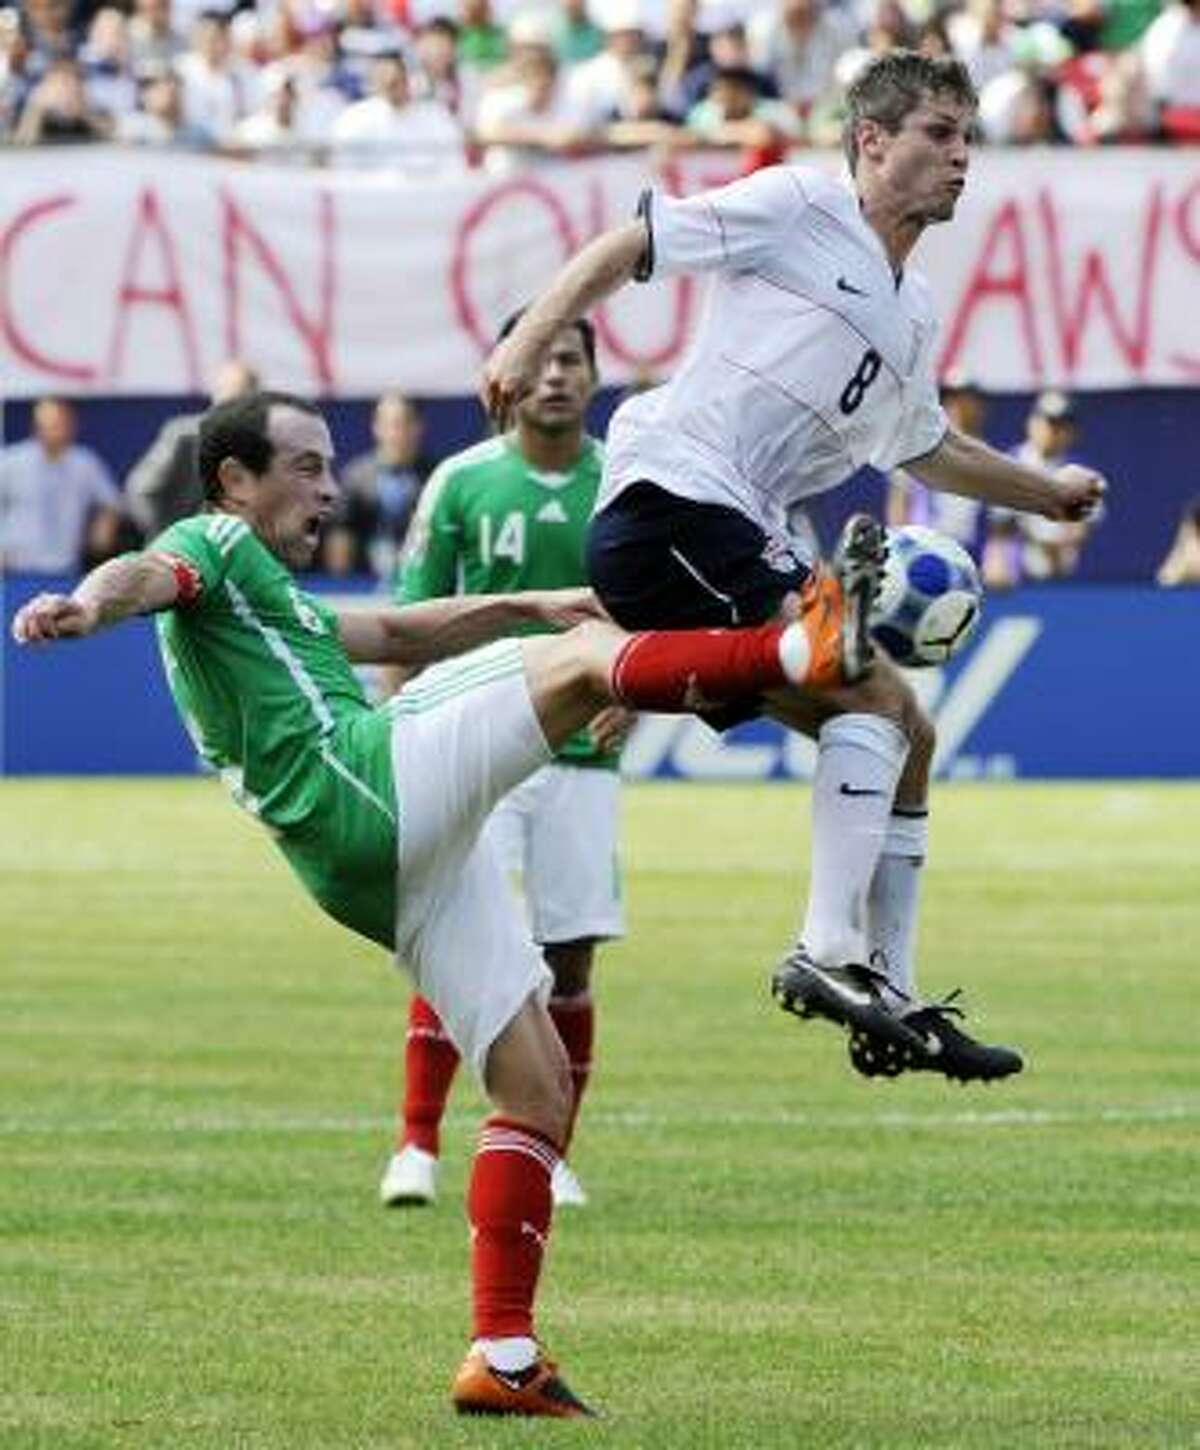 Mexico's Gerardo Torrado, left, and the United States' Logan Pause (8) battle for the ball during the first half of the CONCACAF Gold Cup soccer final.